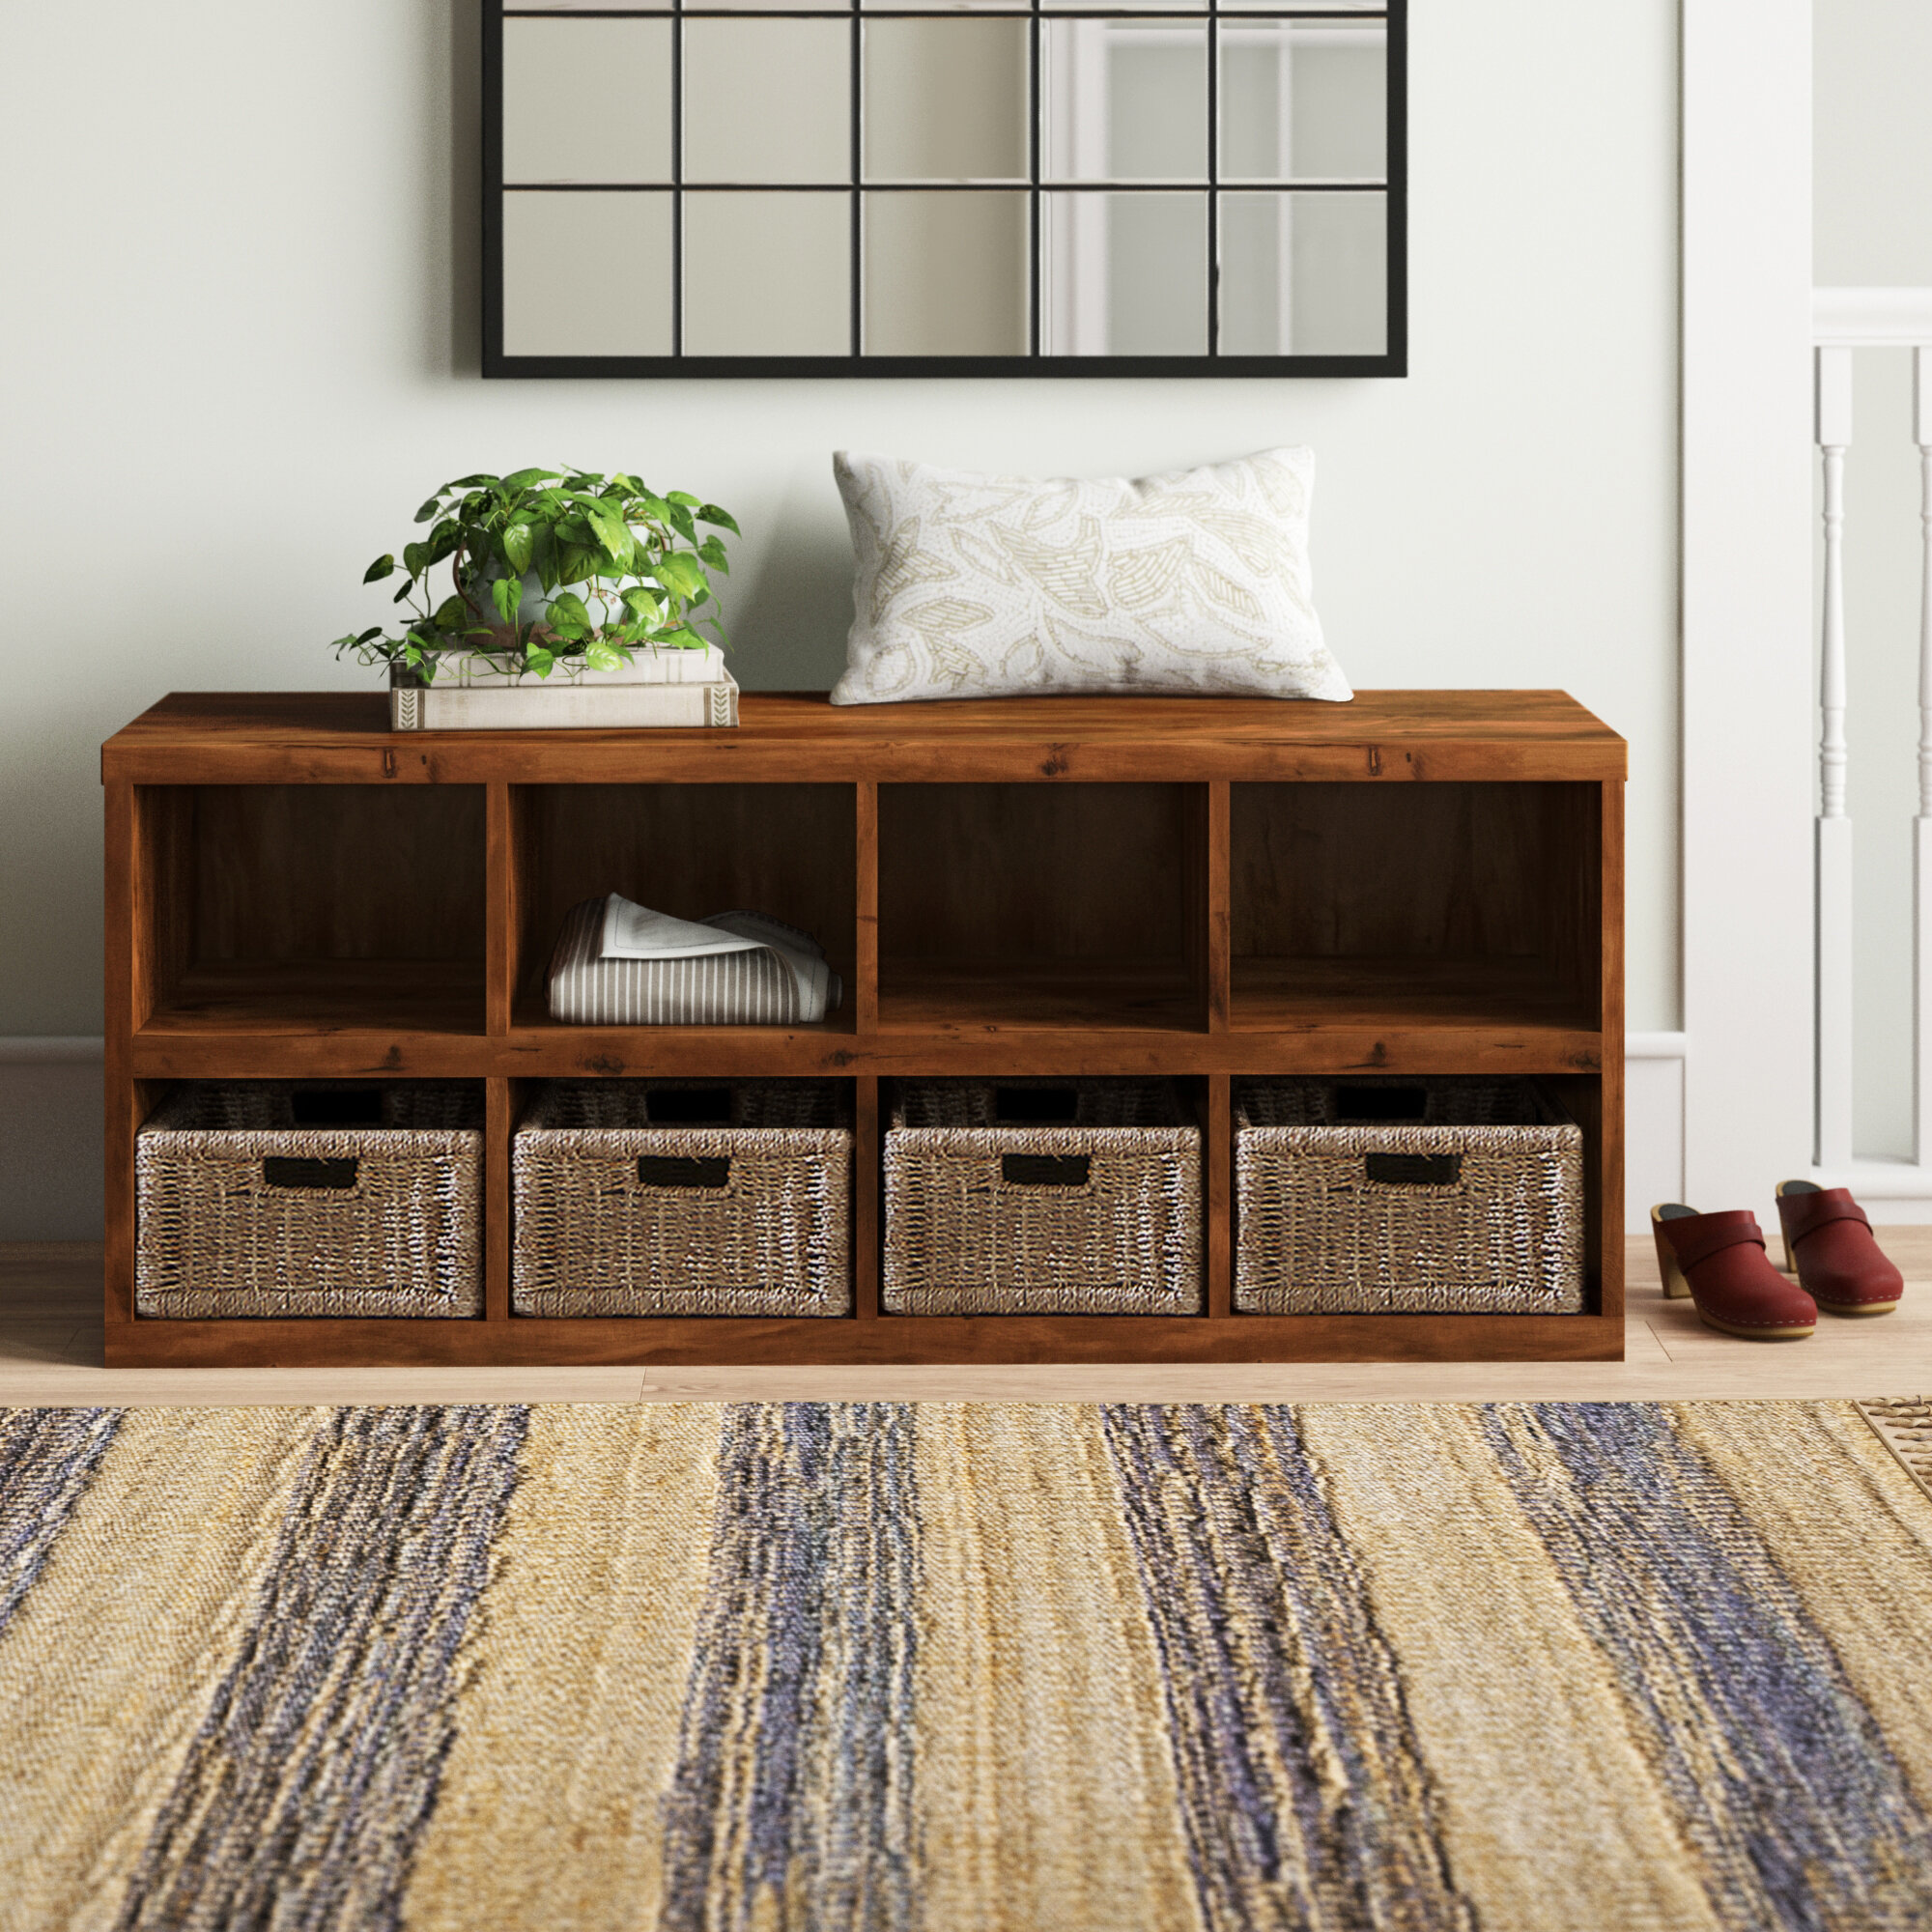 Rustic Storage Benches You Ll Love In 2021 Wayfair